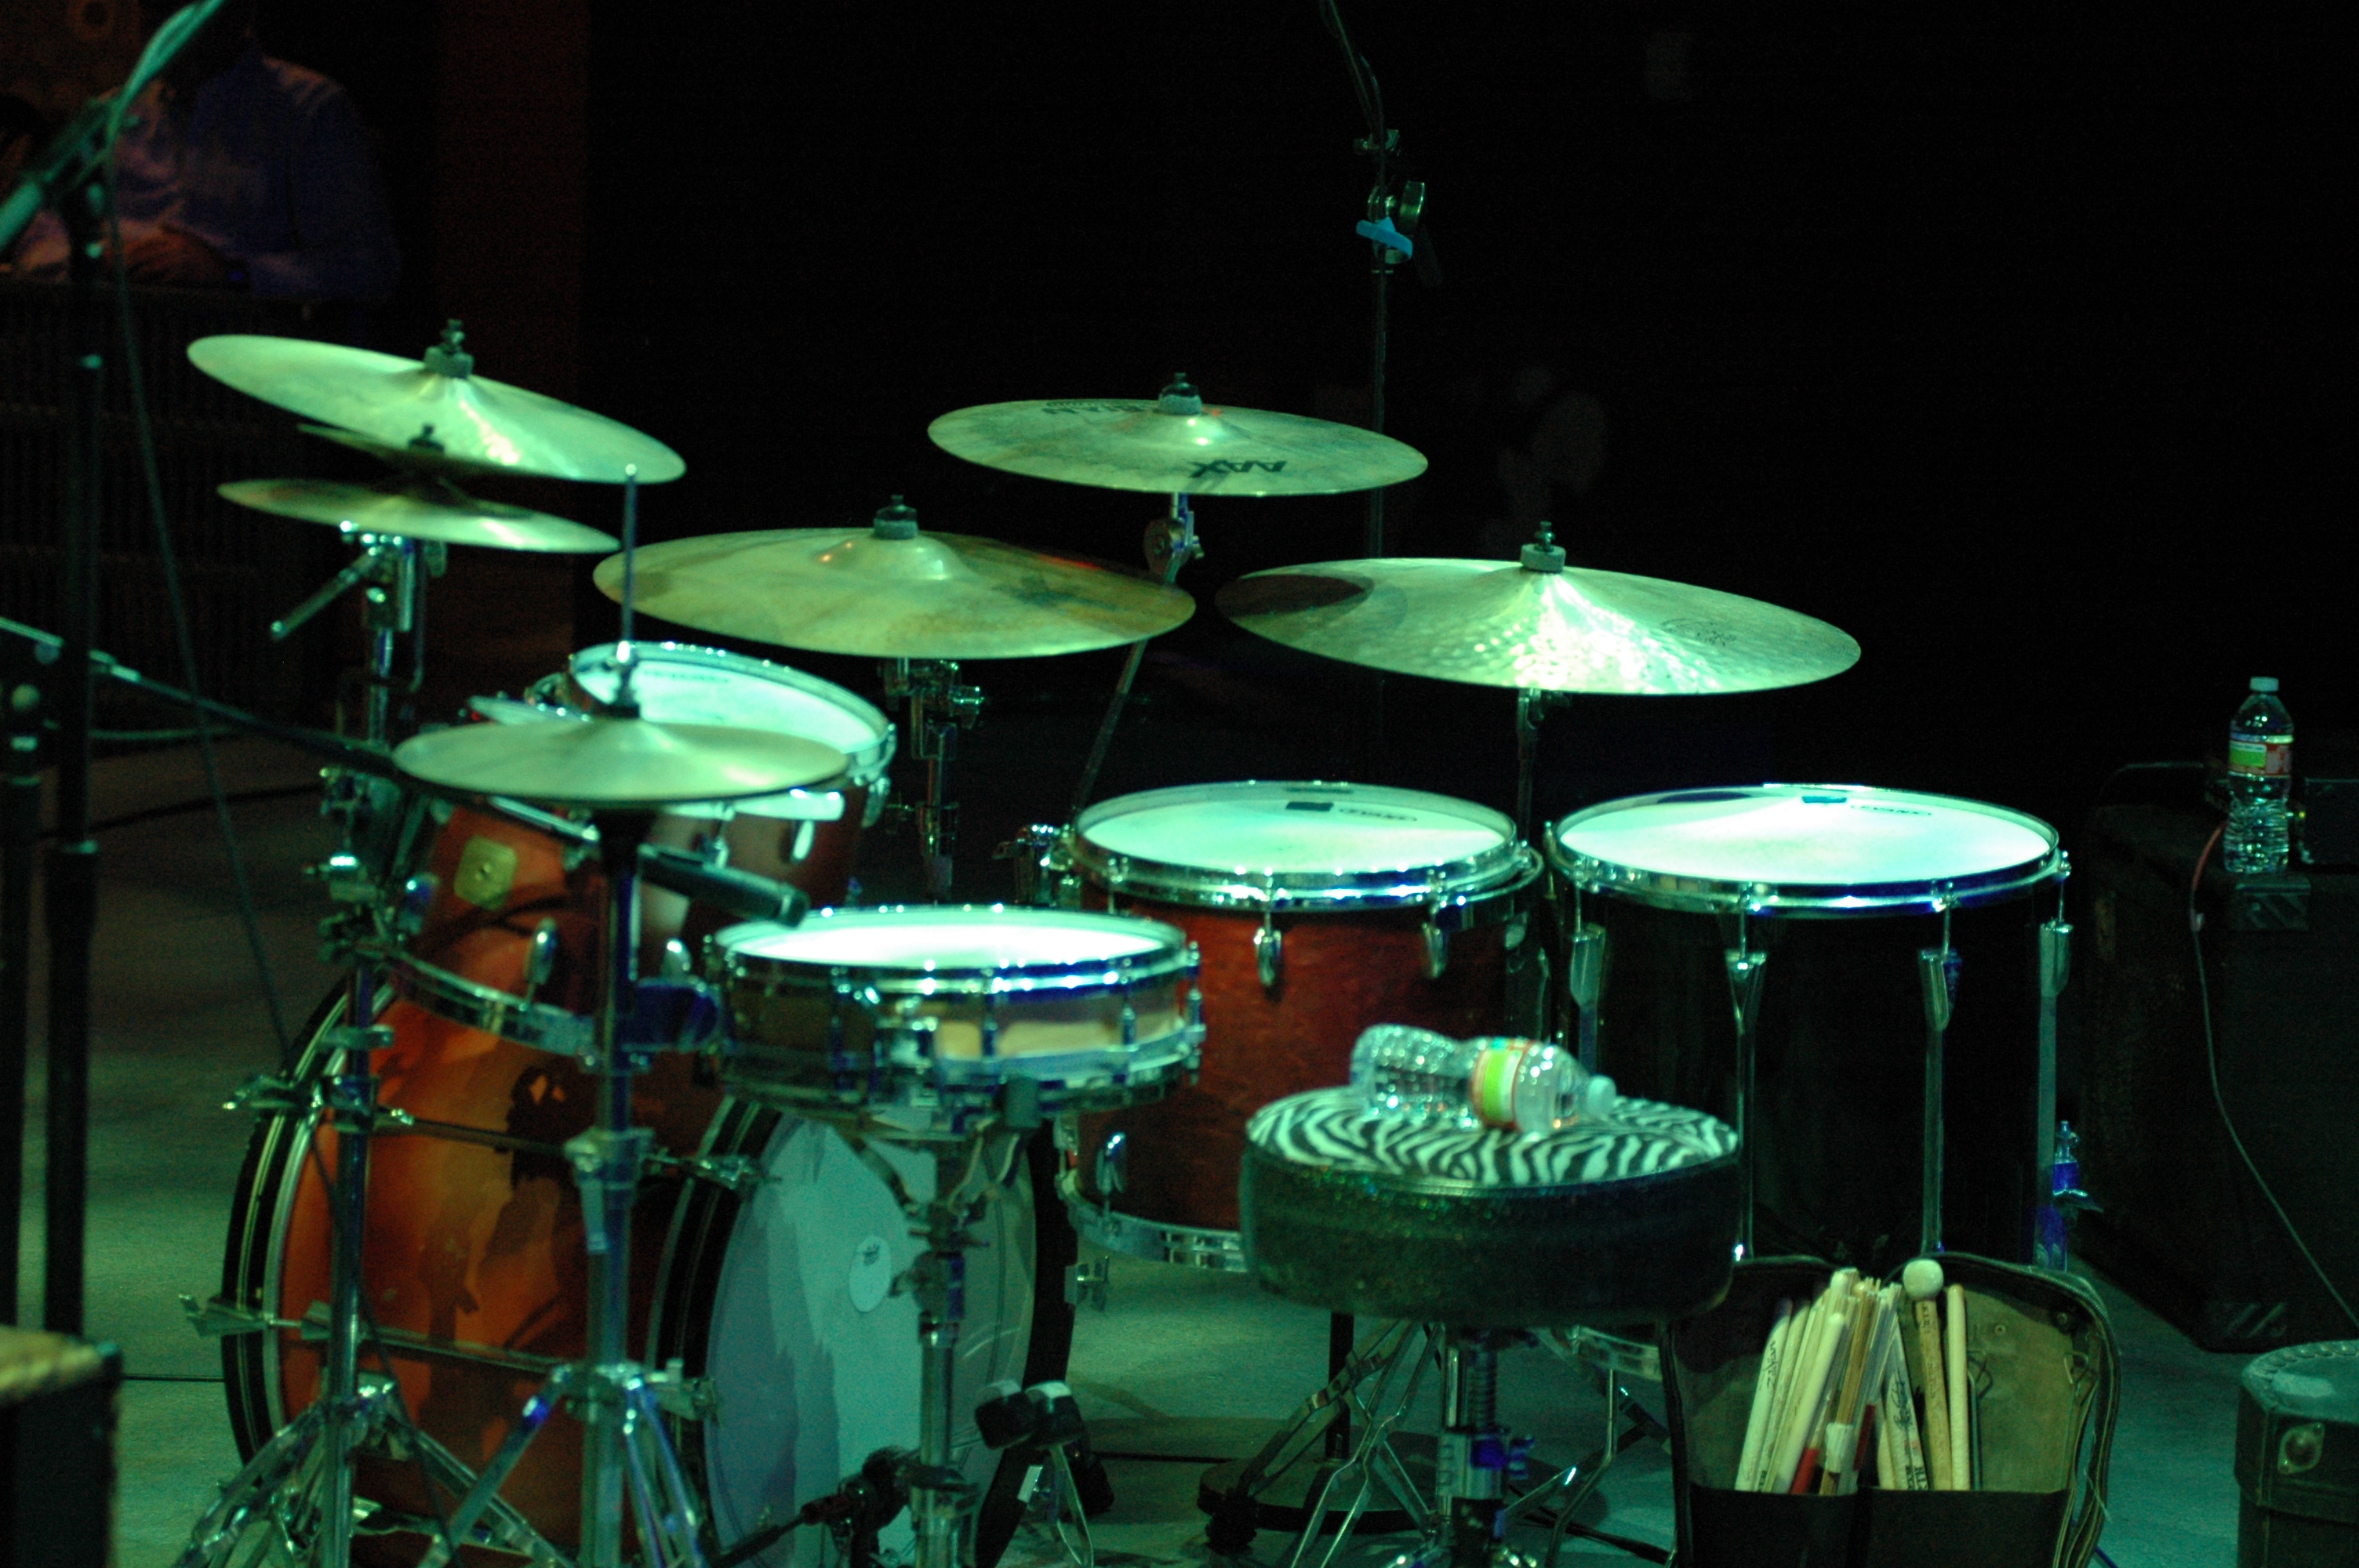 Greg Beck's Drum Set